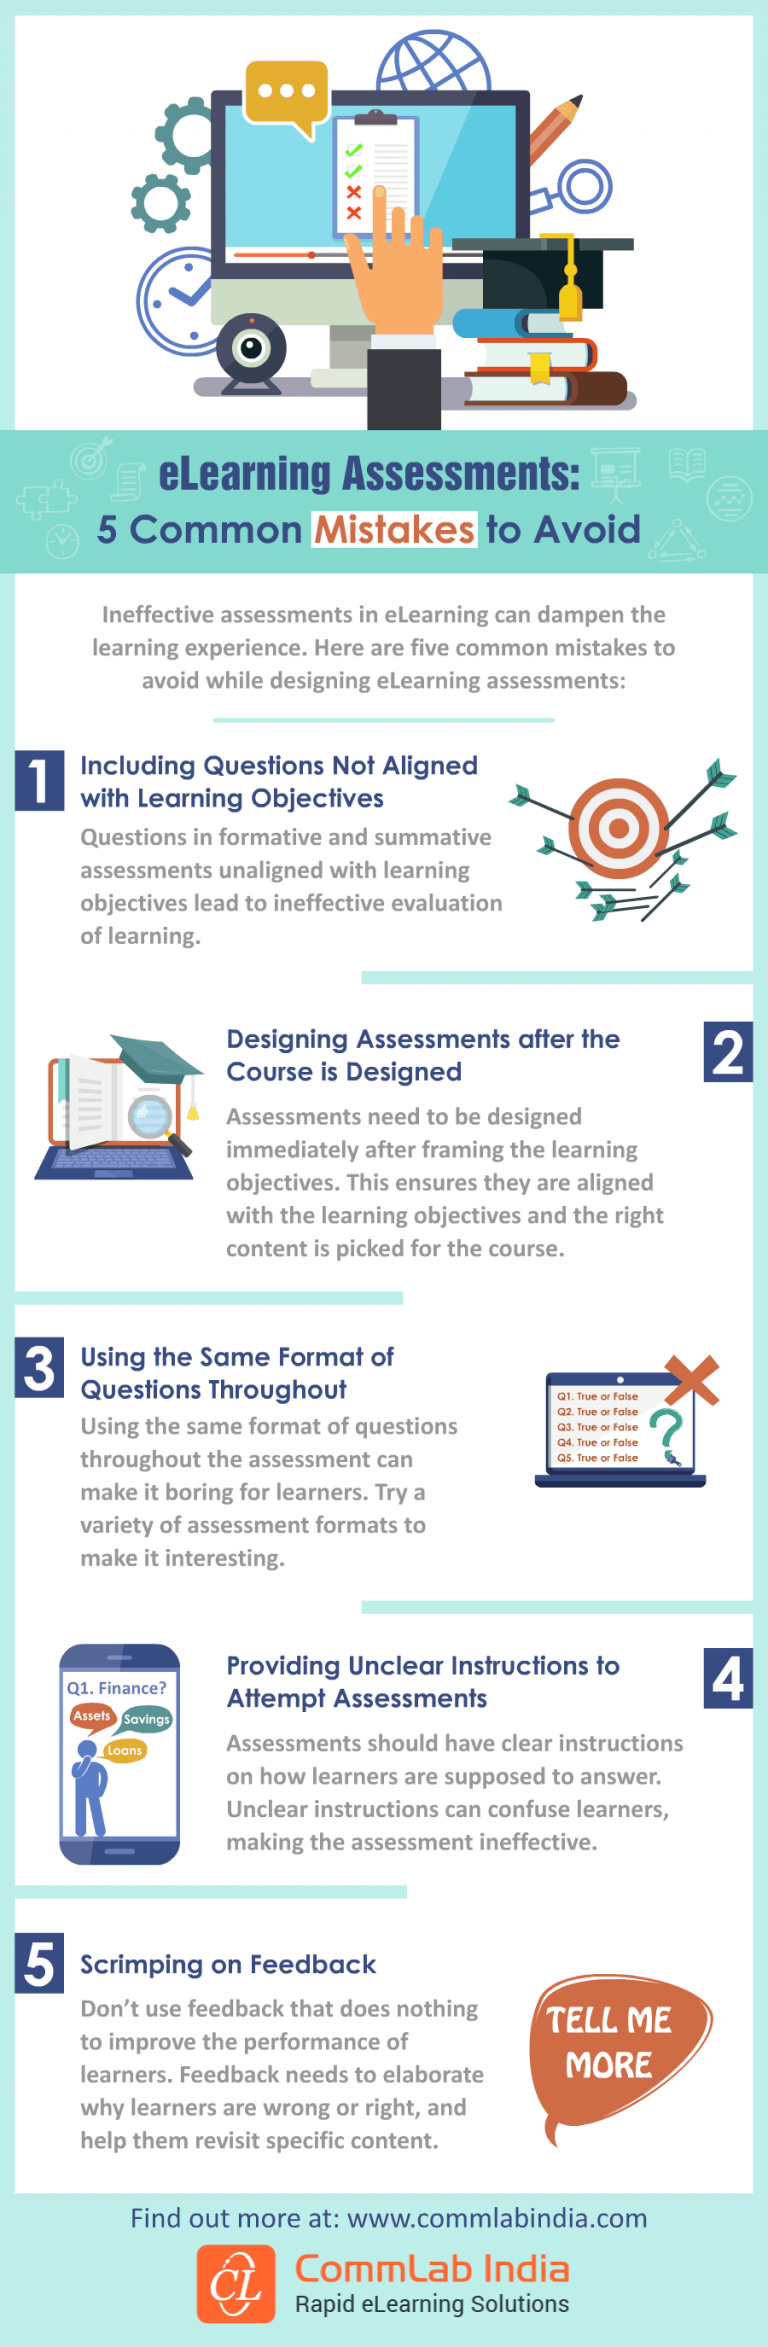 eLearning Assessments: 5 Common Mistakes To Avoid